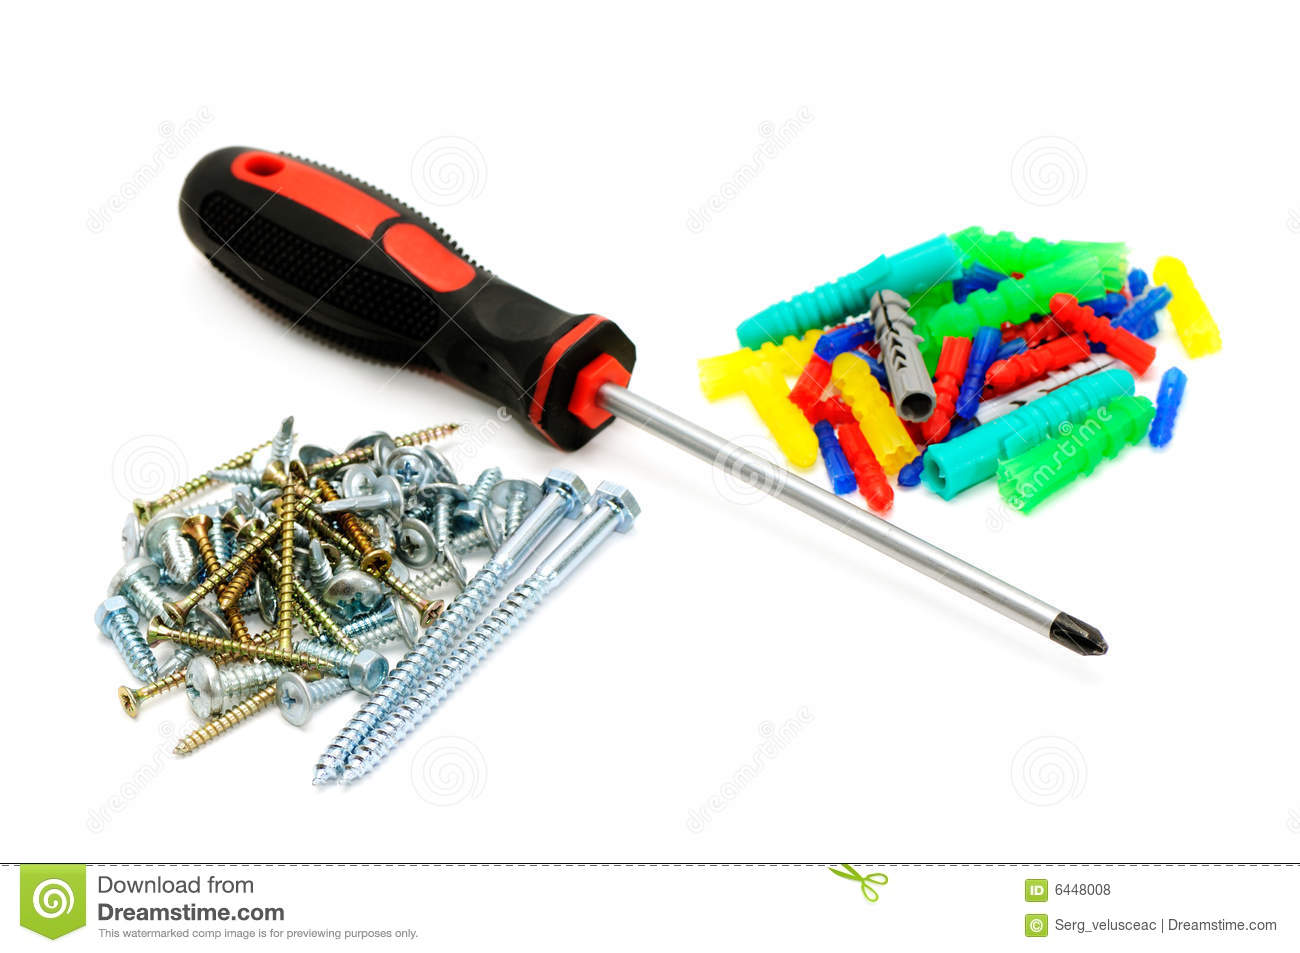 Screw-driver and screws